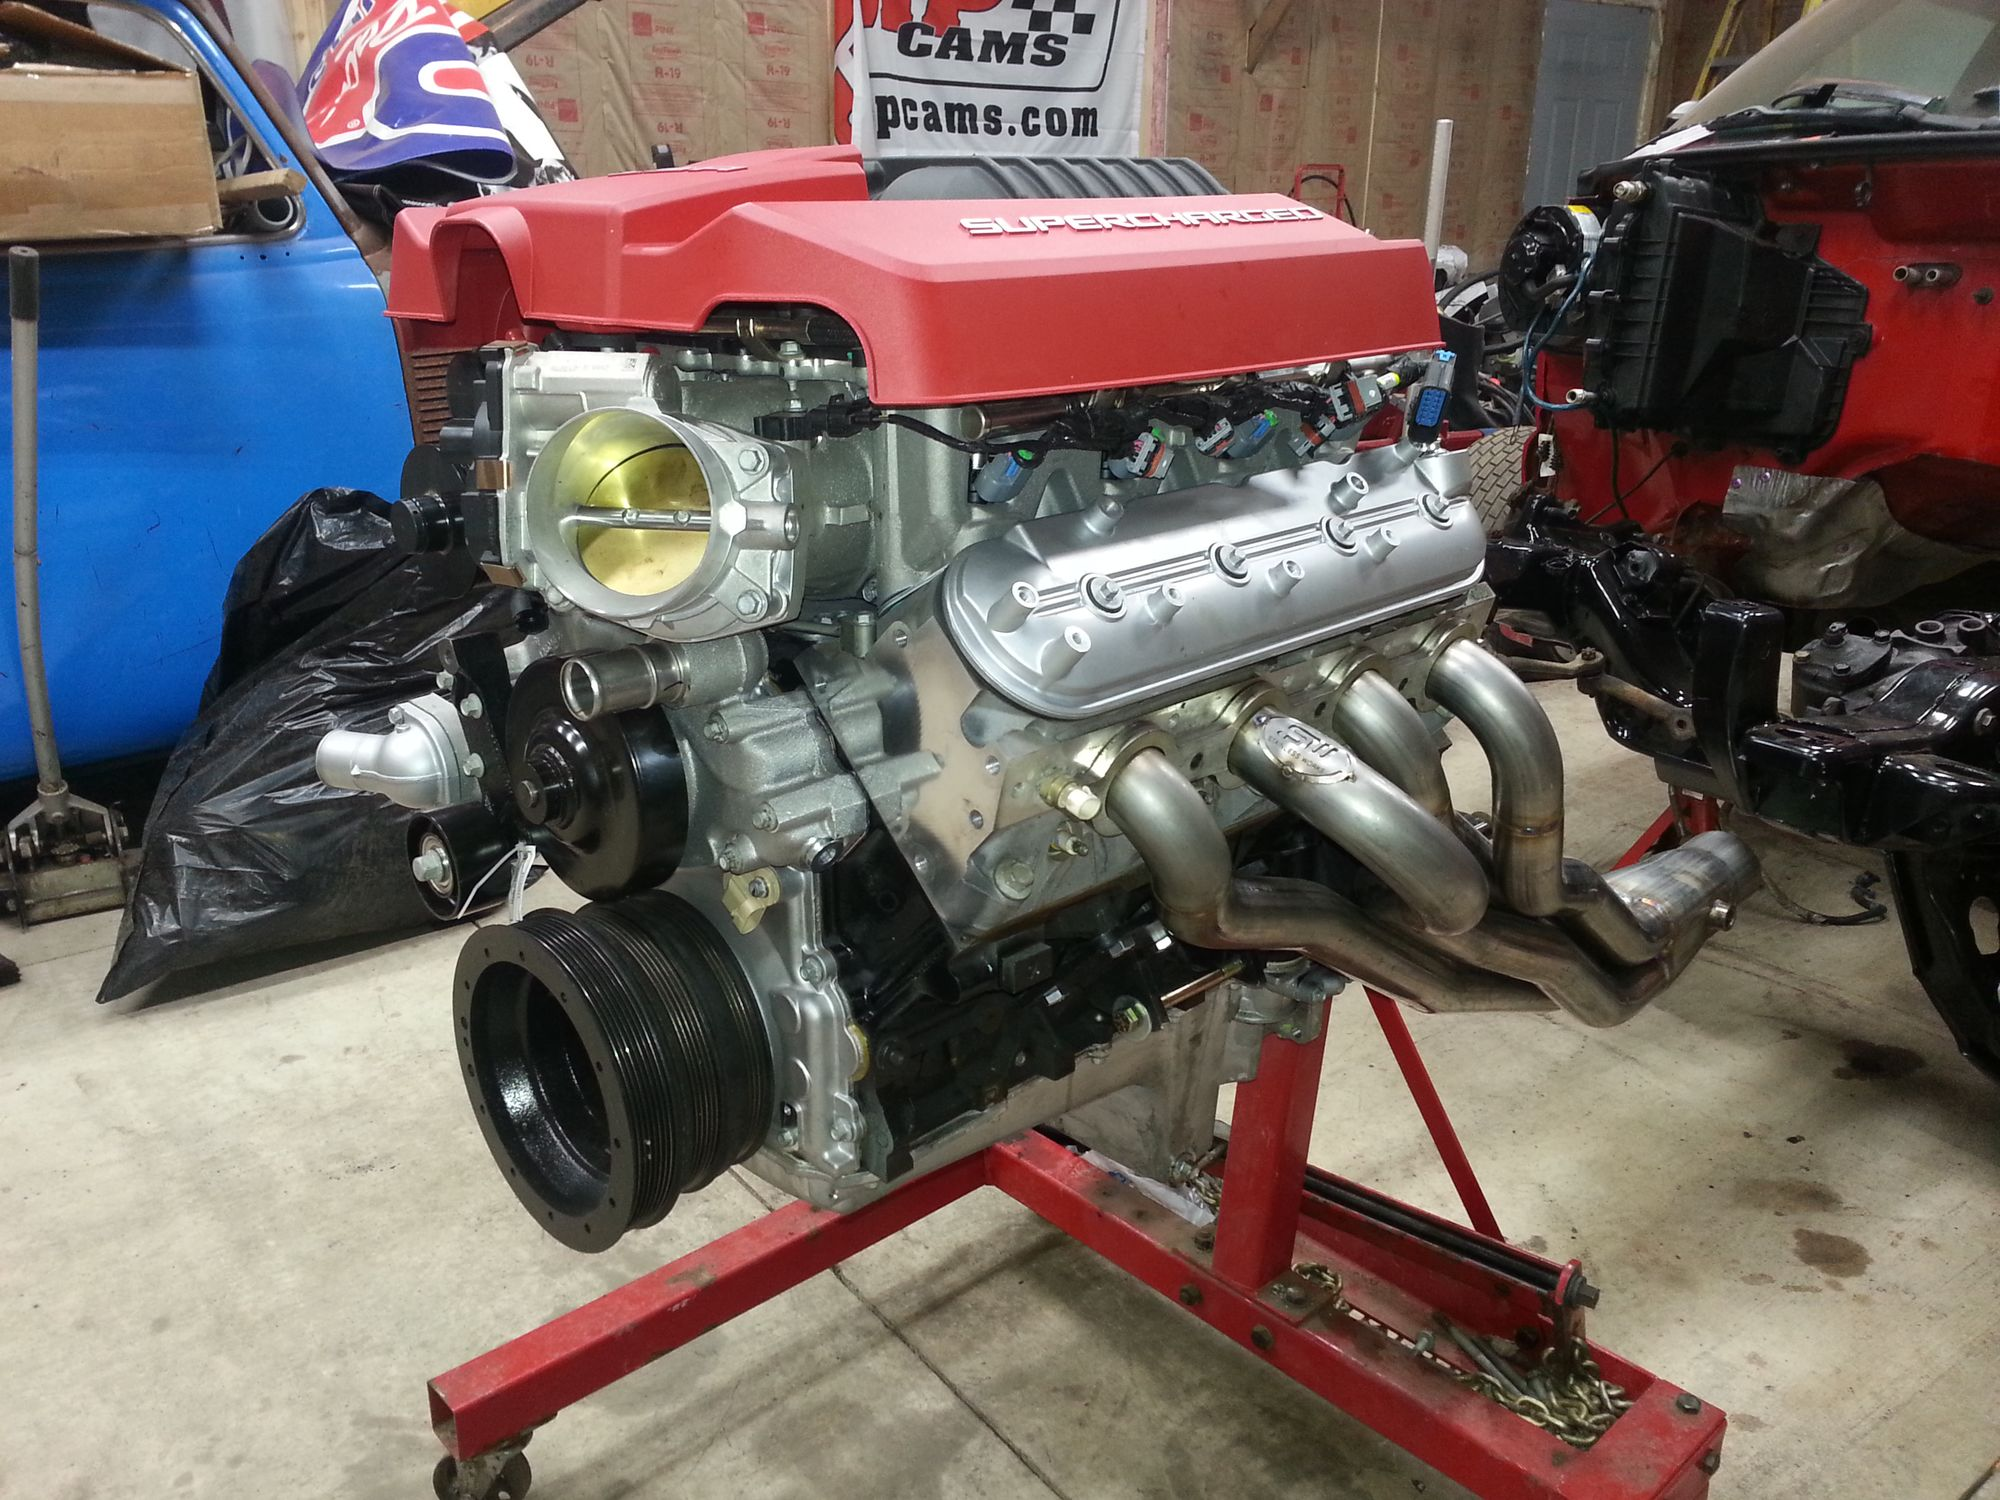 Chevy S10 with a Supercharged 6.0 L LSx V8 – Engine Swap Depot on